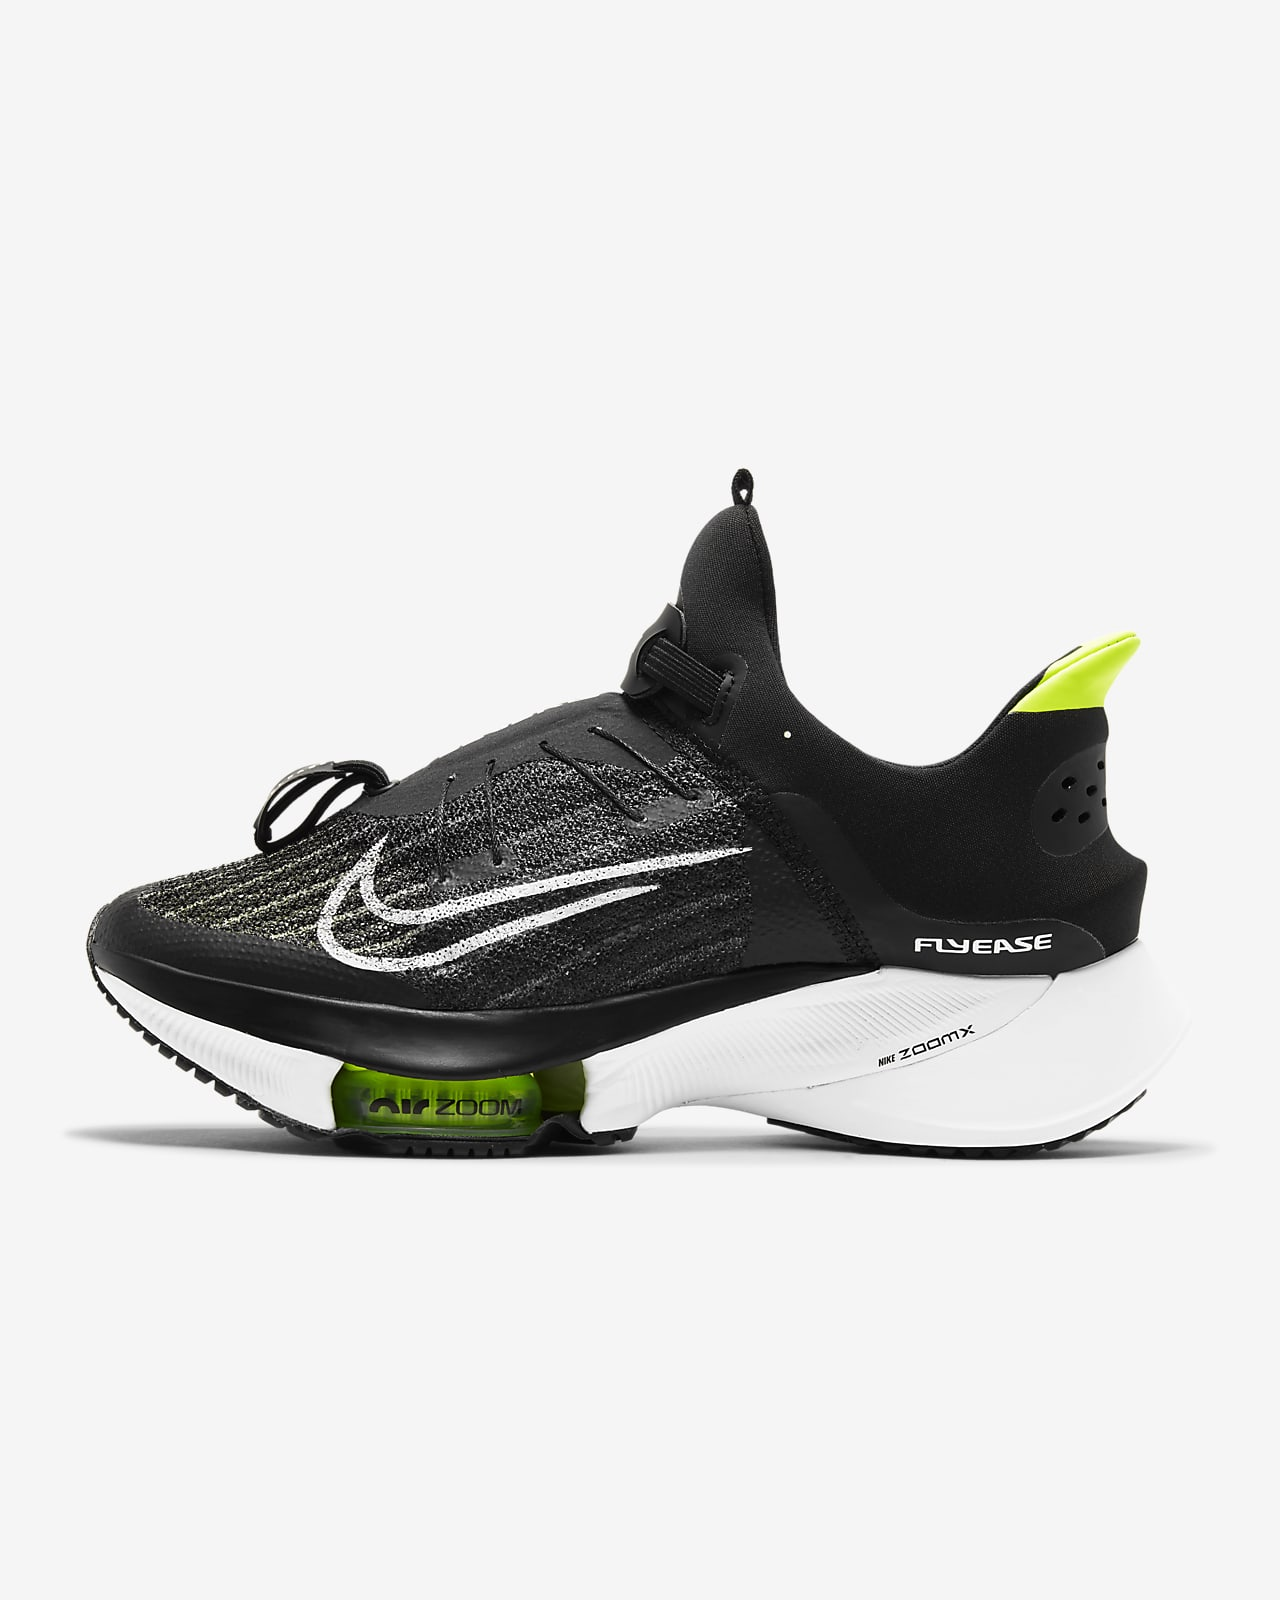 Chaussure de running Nike Air Zoom Tempo NEXT% FlyEase pour Femme